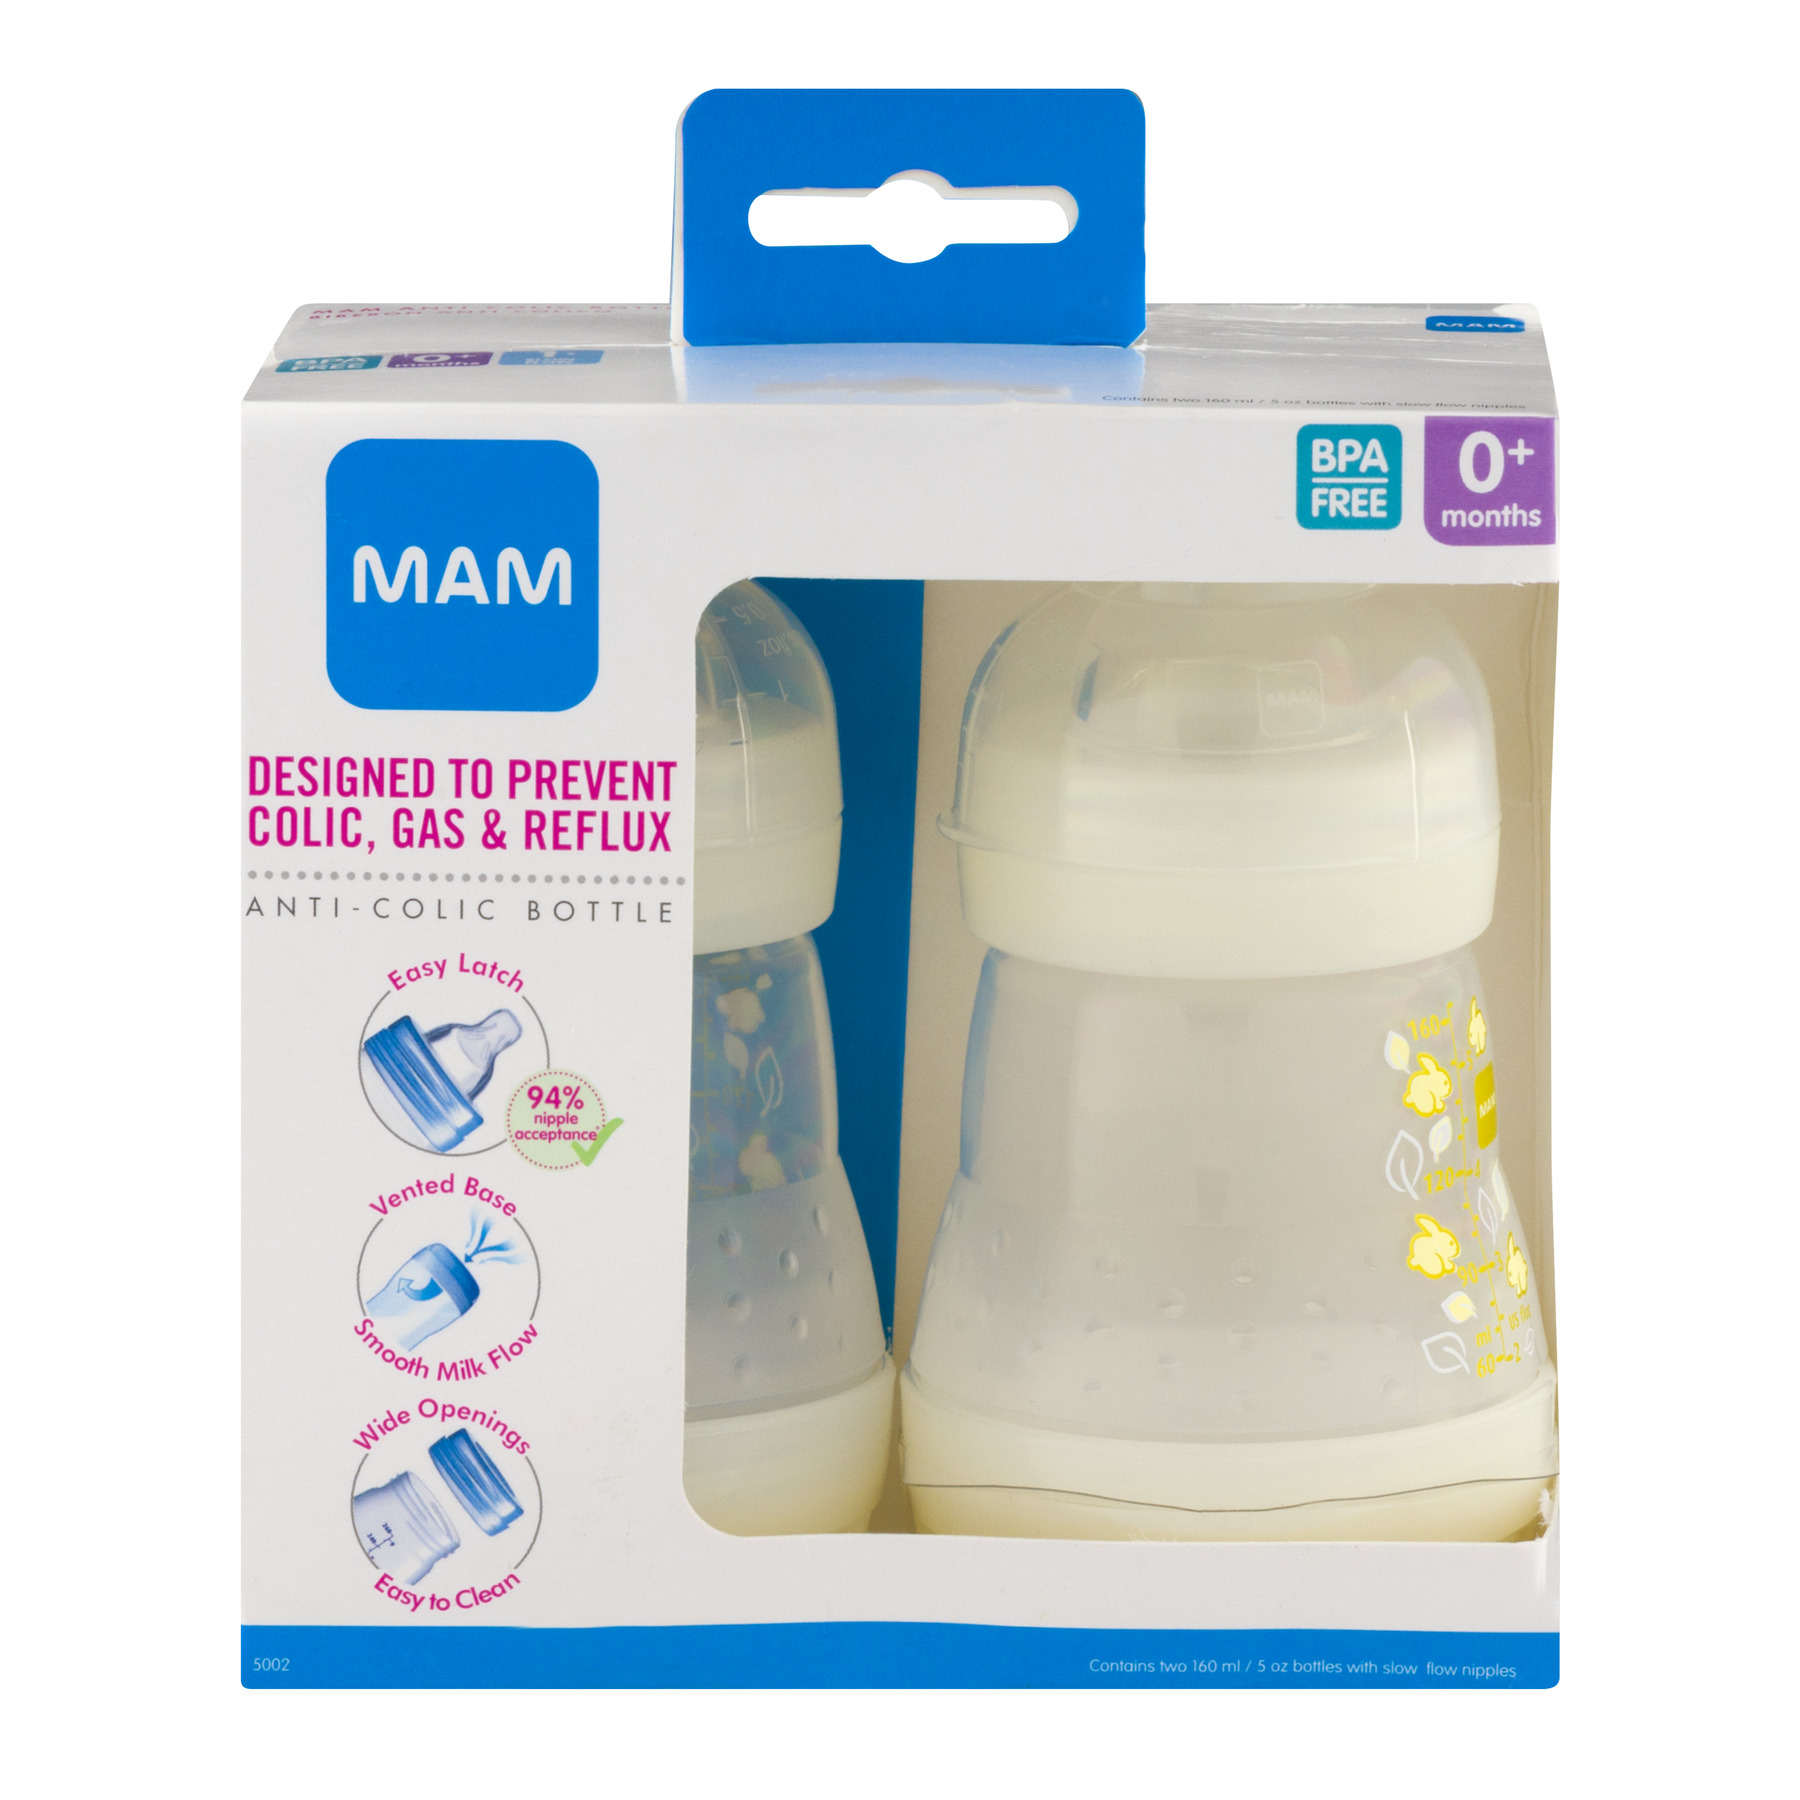 MAM Anti-Colic Bottle 0+ Months - 2 CT